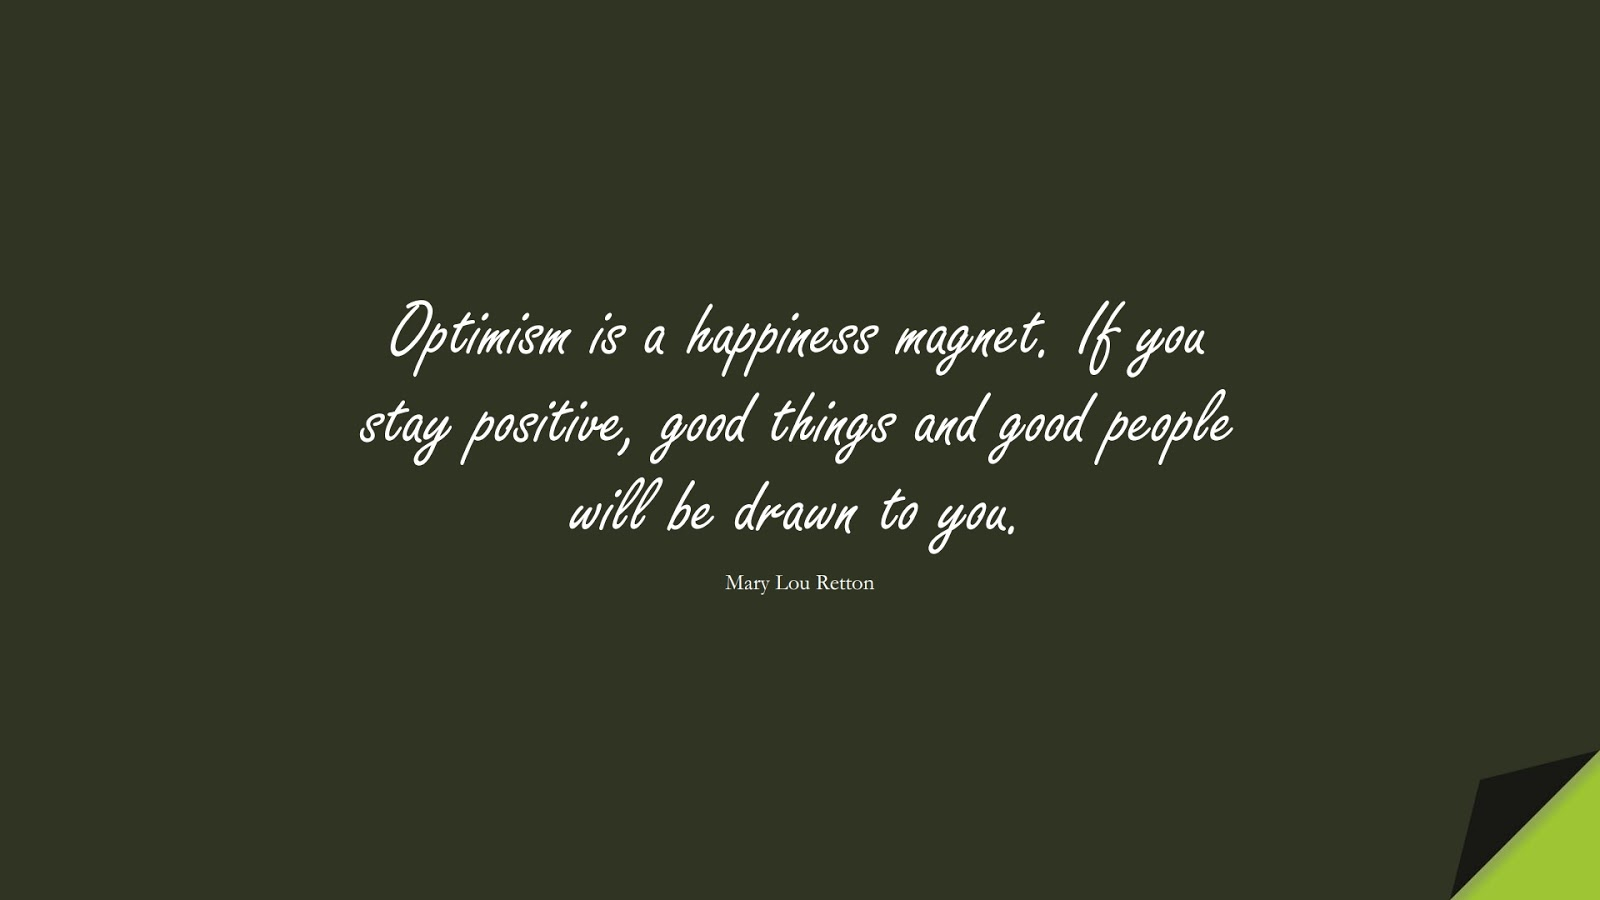 Optimism is a happiness magnet. If you stay positive, good things and good people will be drawn to you. (Mary Lou Retton);  #PositiveQuotes